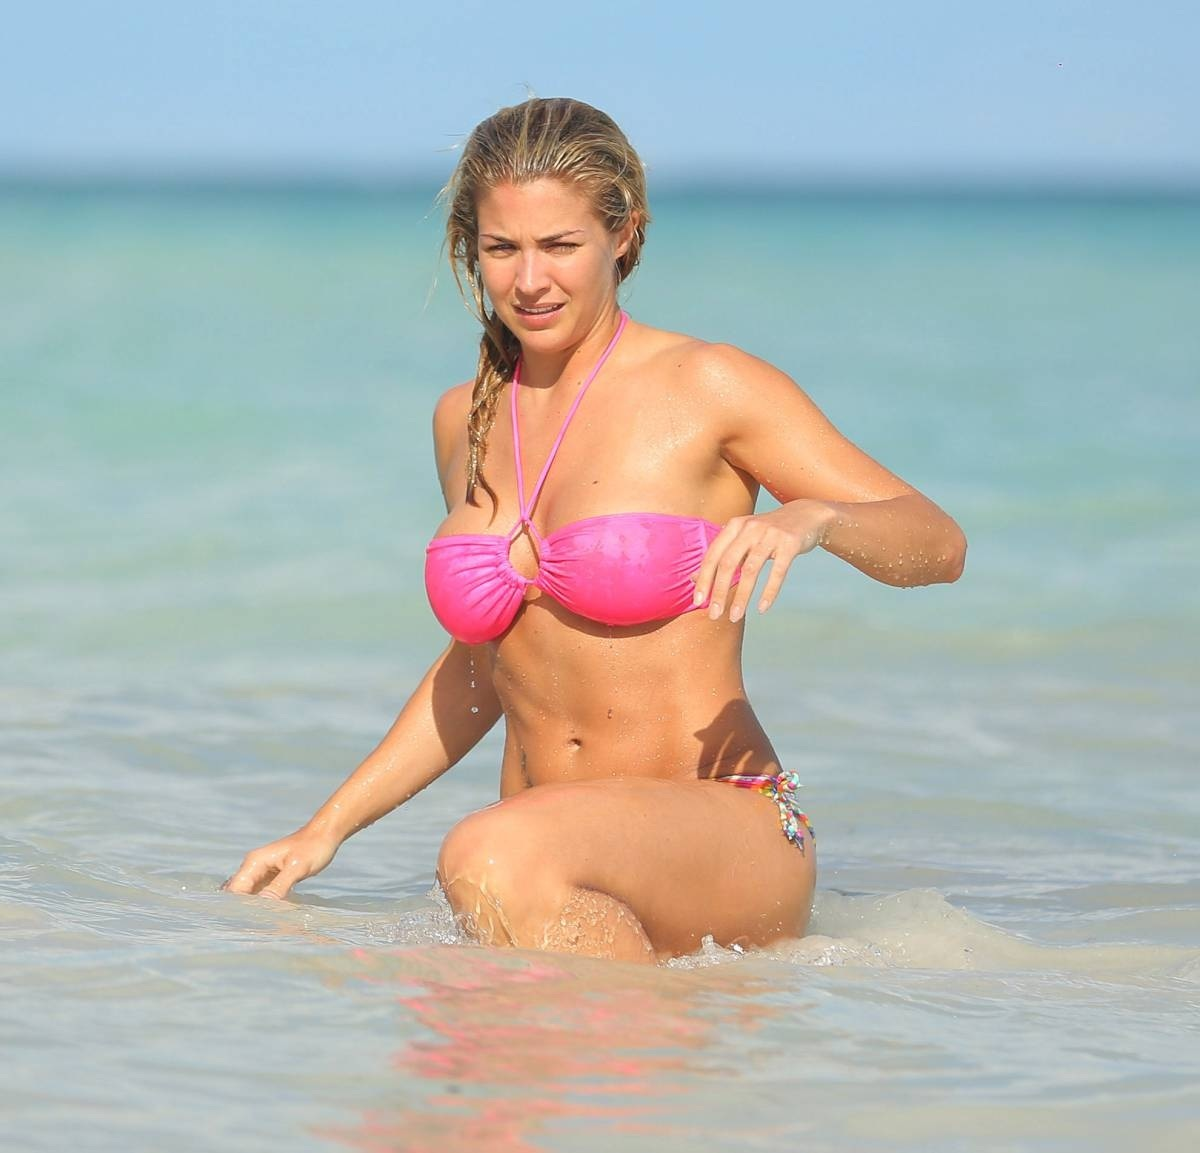 Gemma Atkinson Bikini Photos In Dominican Republic